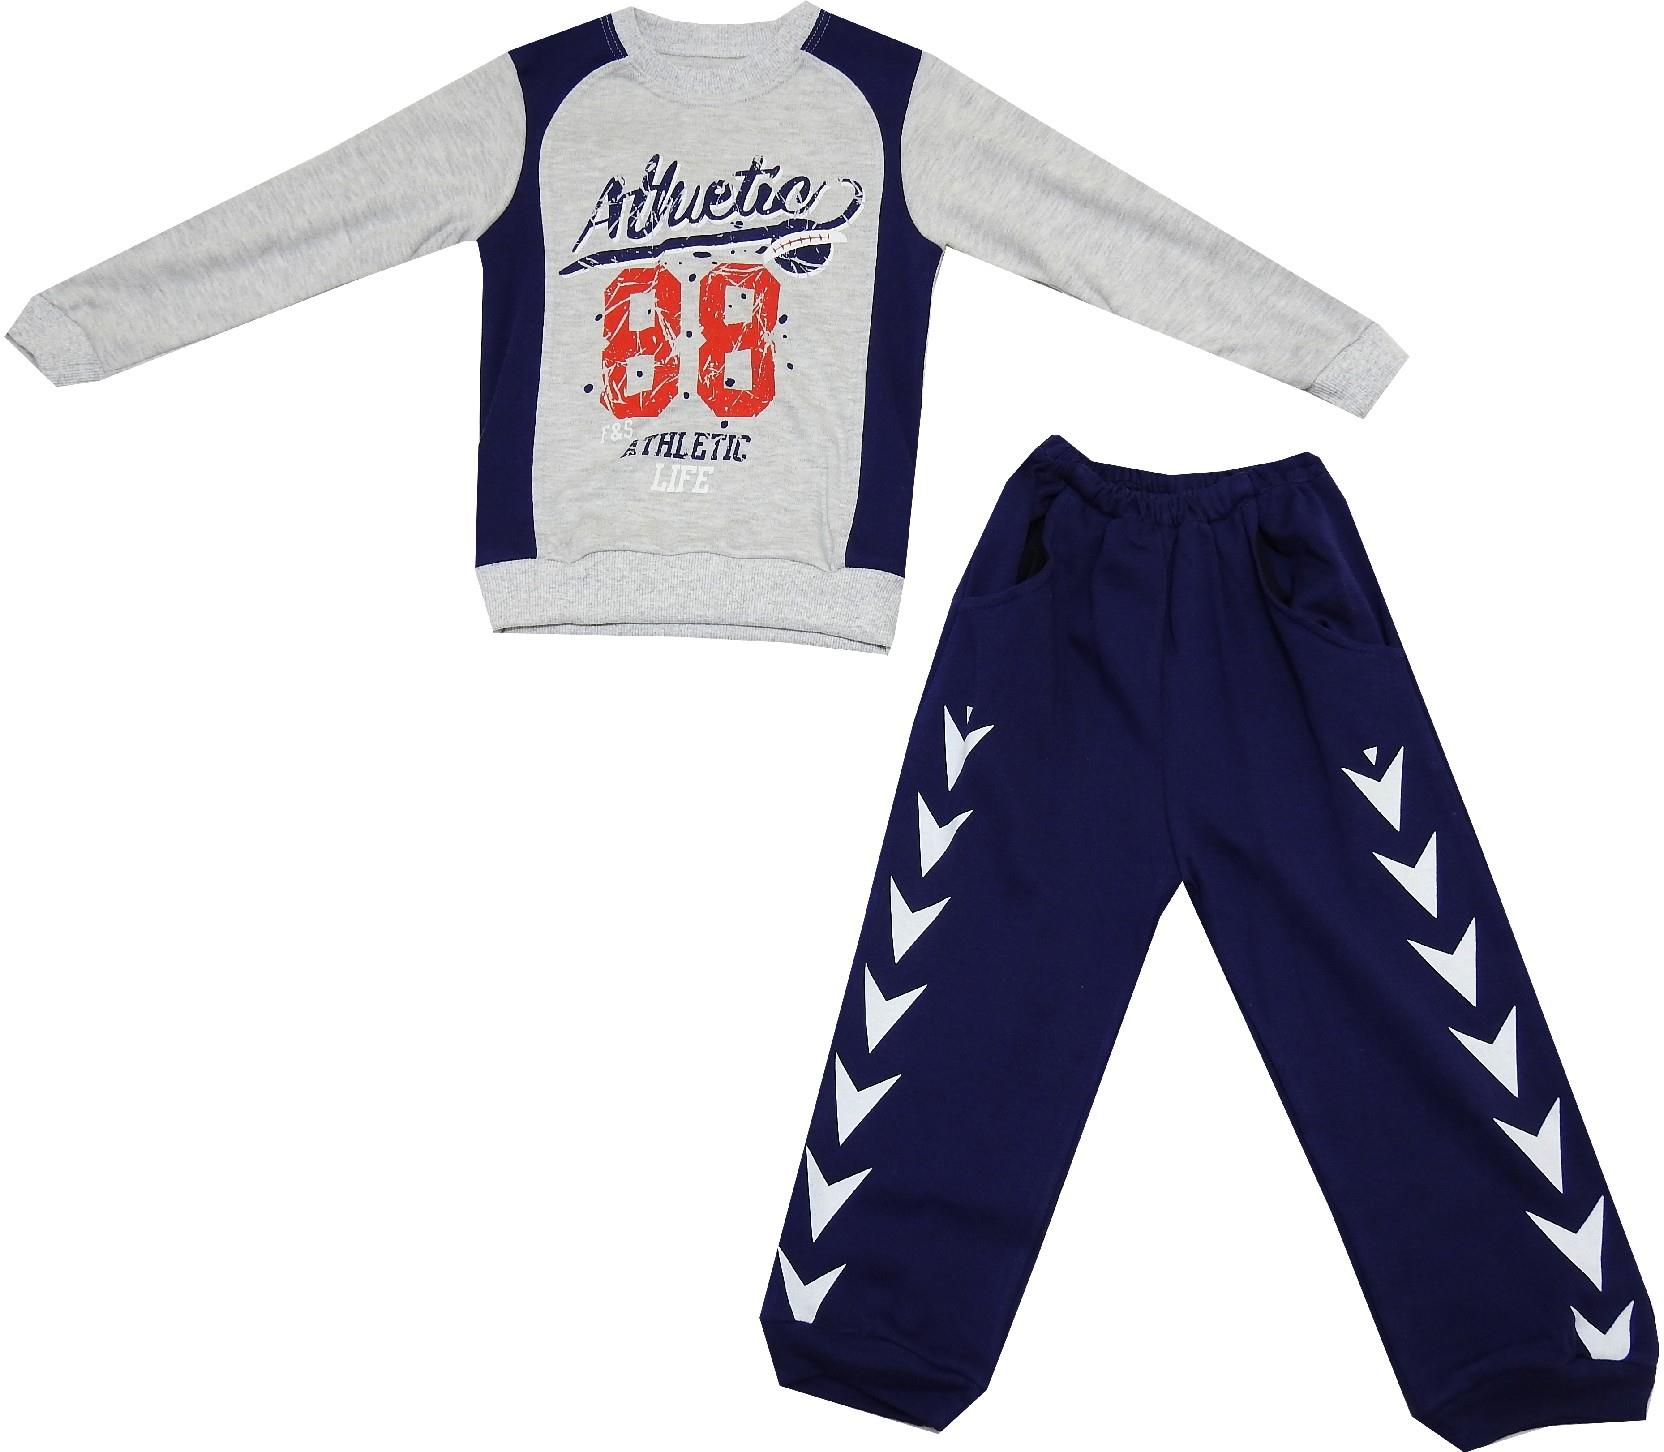 88 ATHLETIC PRNTED DOUBLE SET FOR BOY (2-3-4 AGE)